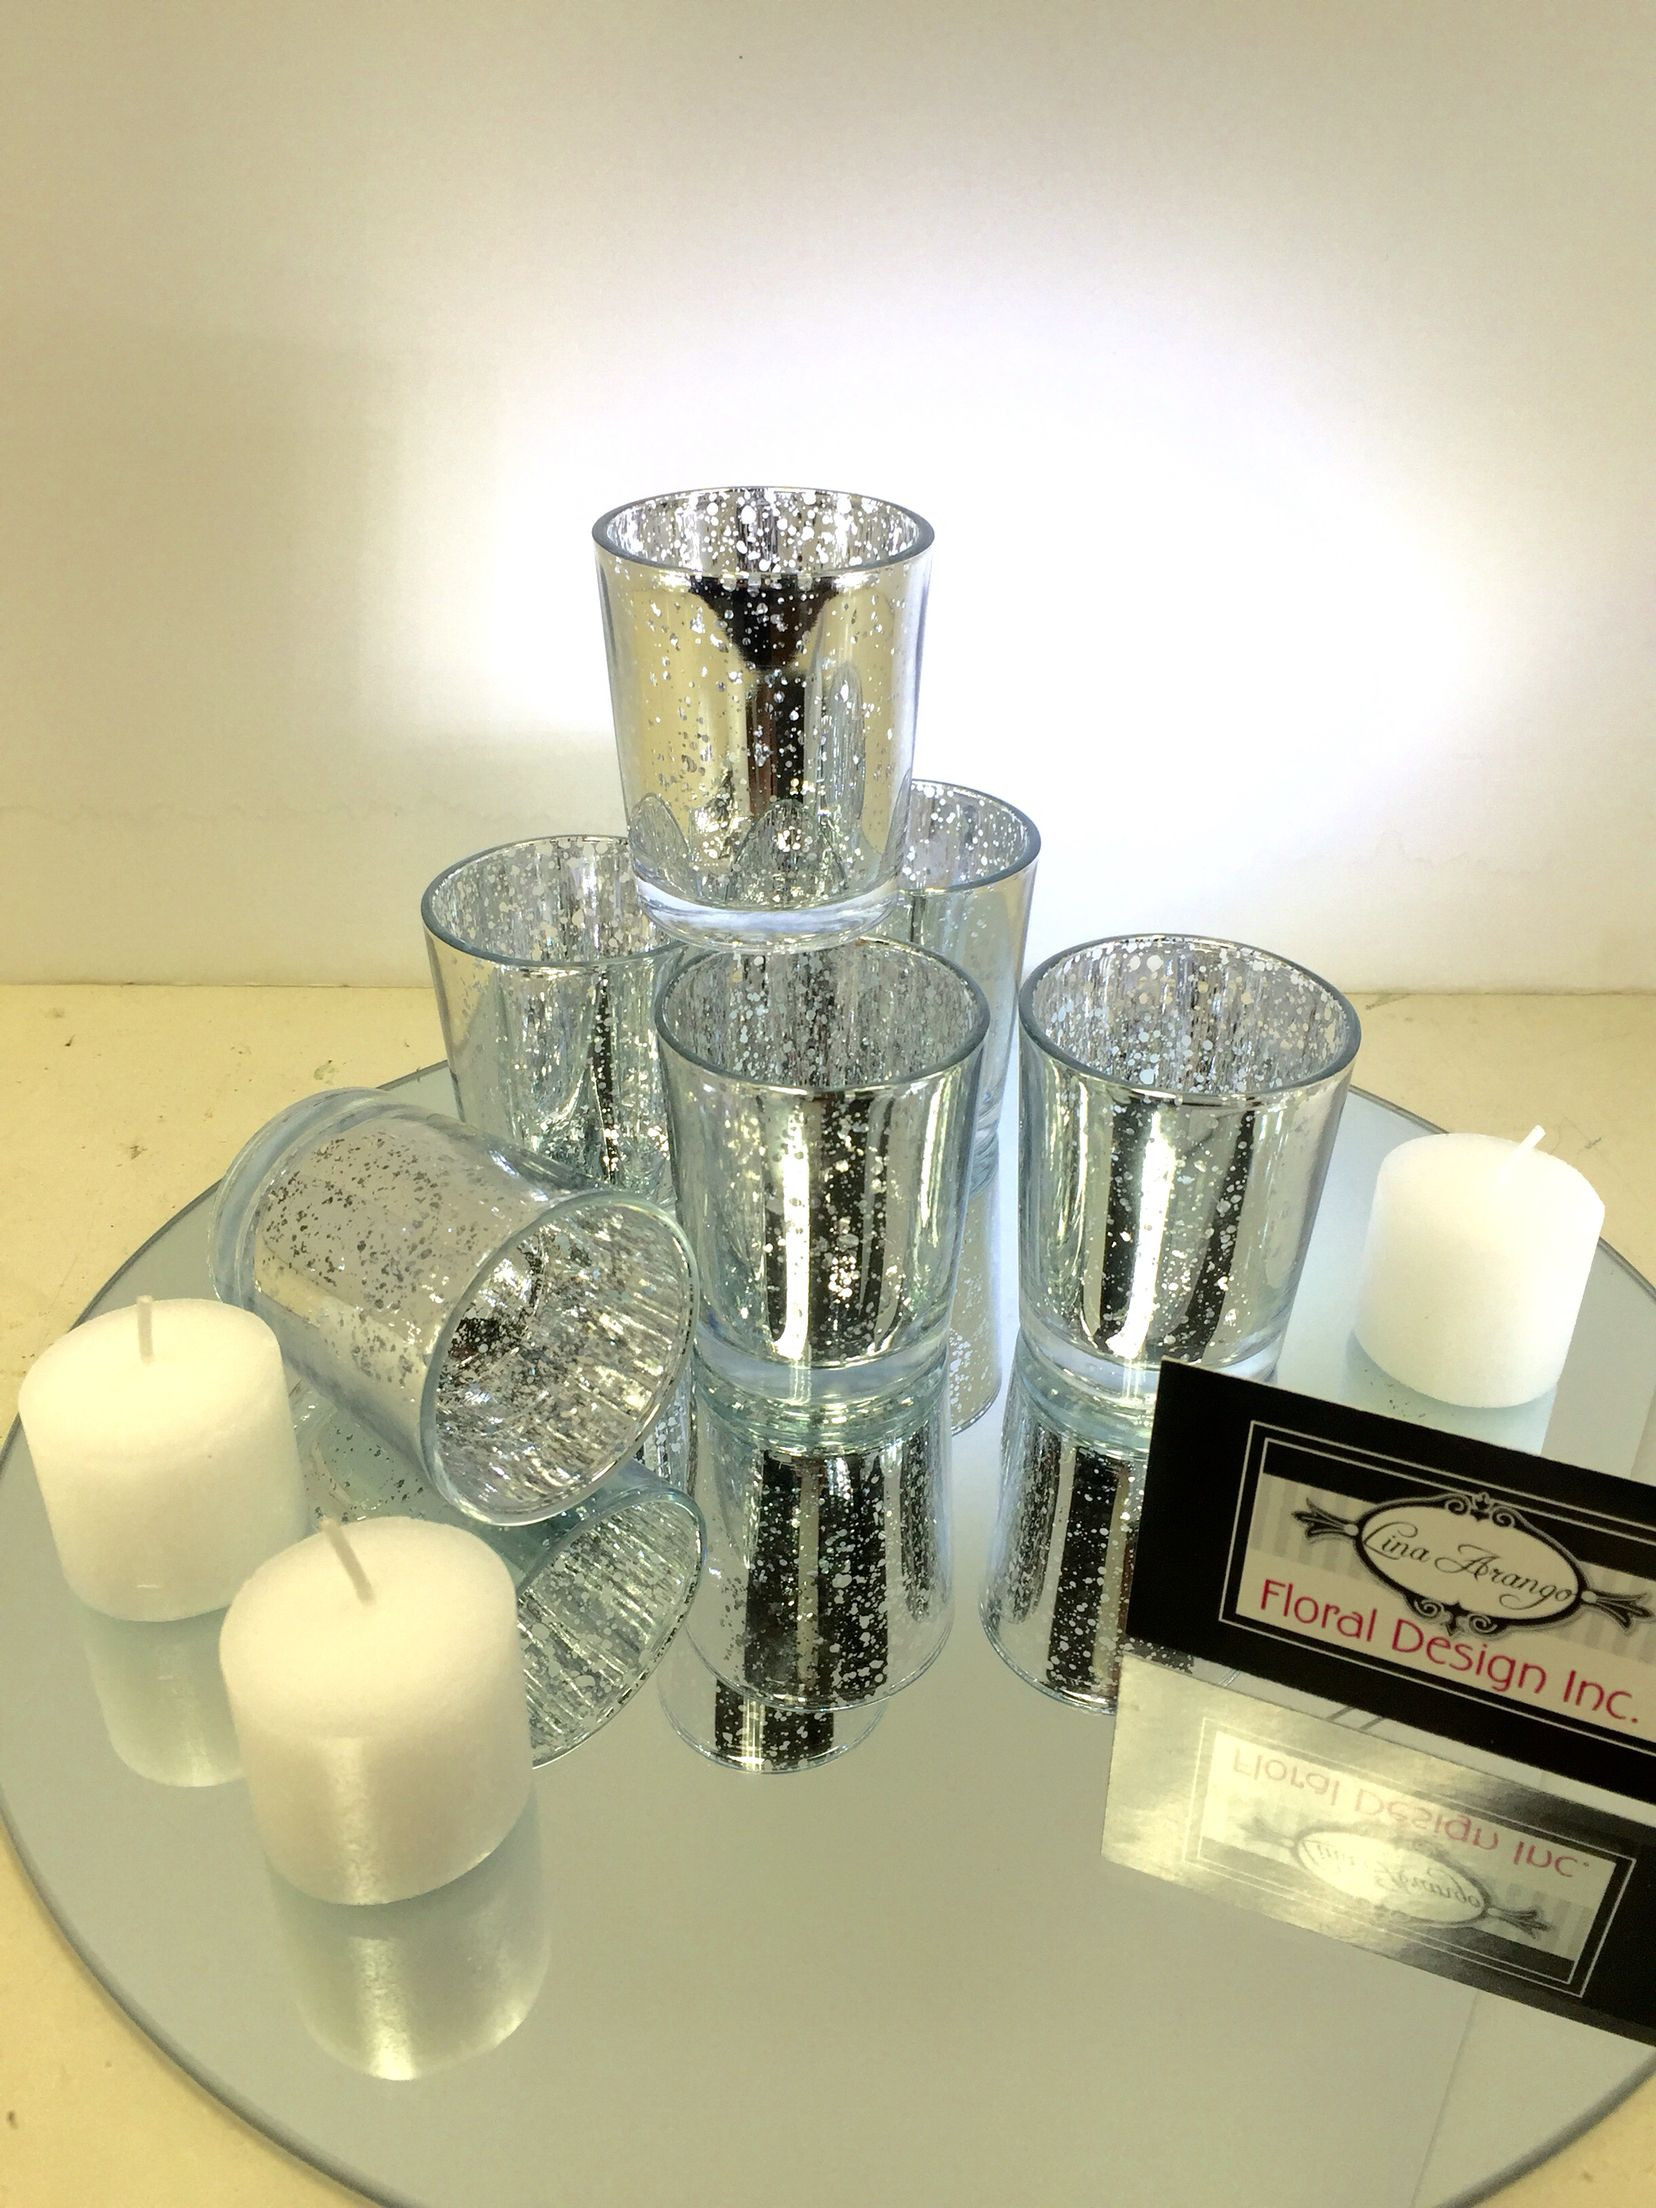 24 inch cylinder vases wholesale of silver mercury glass votives glass vases wholesale and mercury throughout silver mercury glass votives